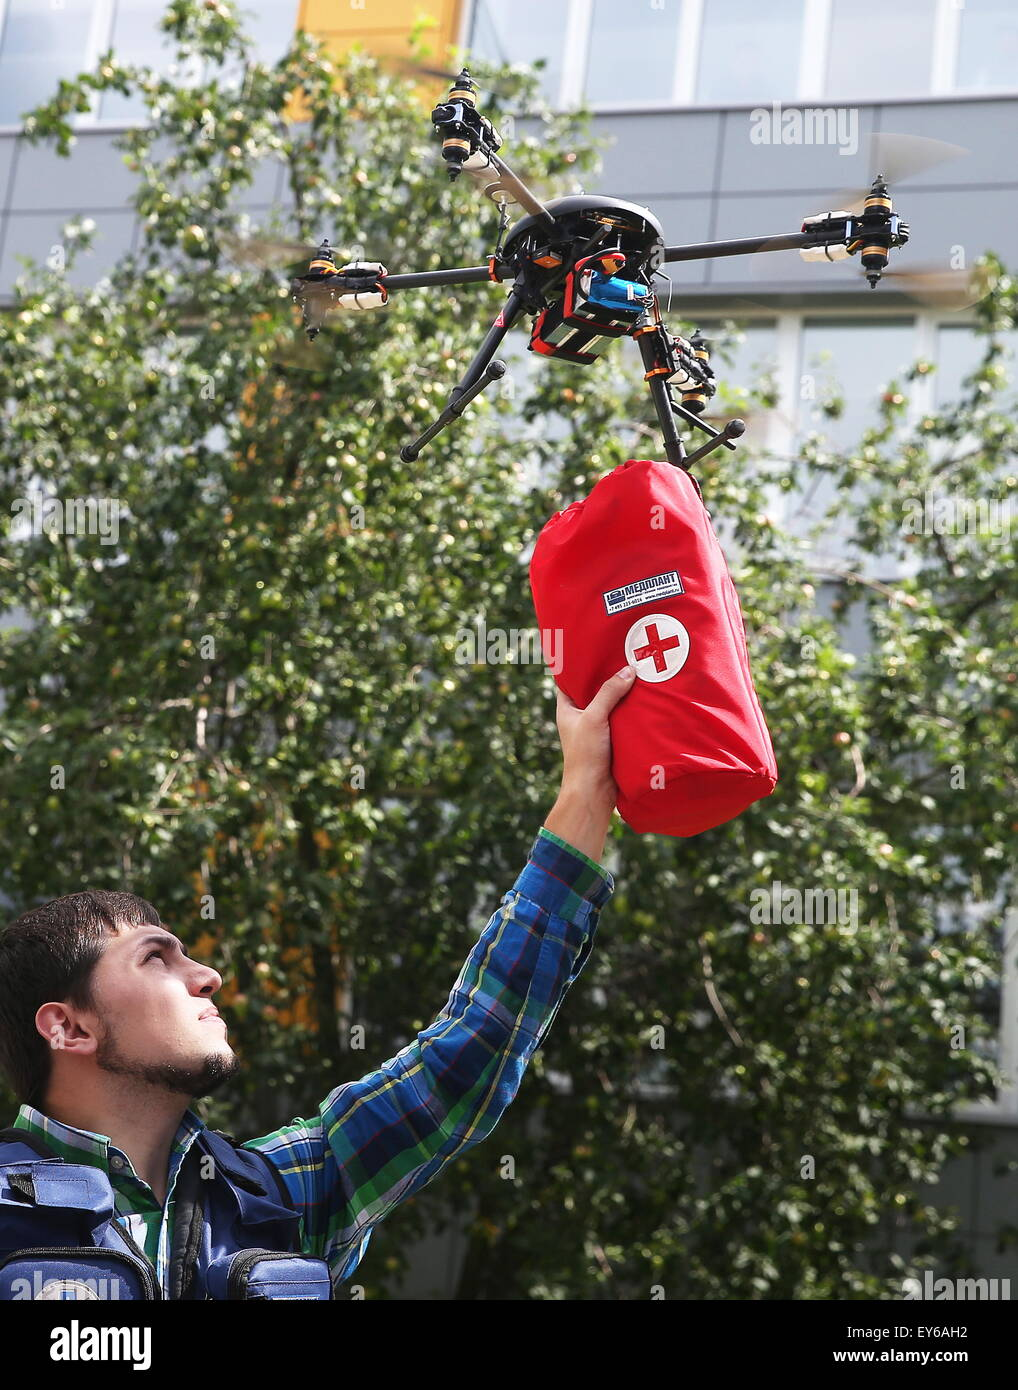 MOSCOW, RUSSIA. JULY 22, 2015. A young man with an unmanned aerial vehicle (drone aircraft) carrying a first aid - Stock Image